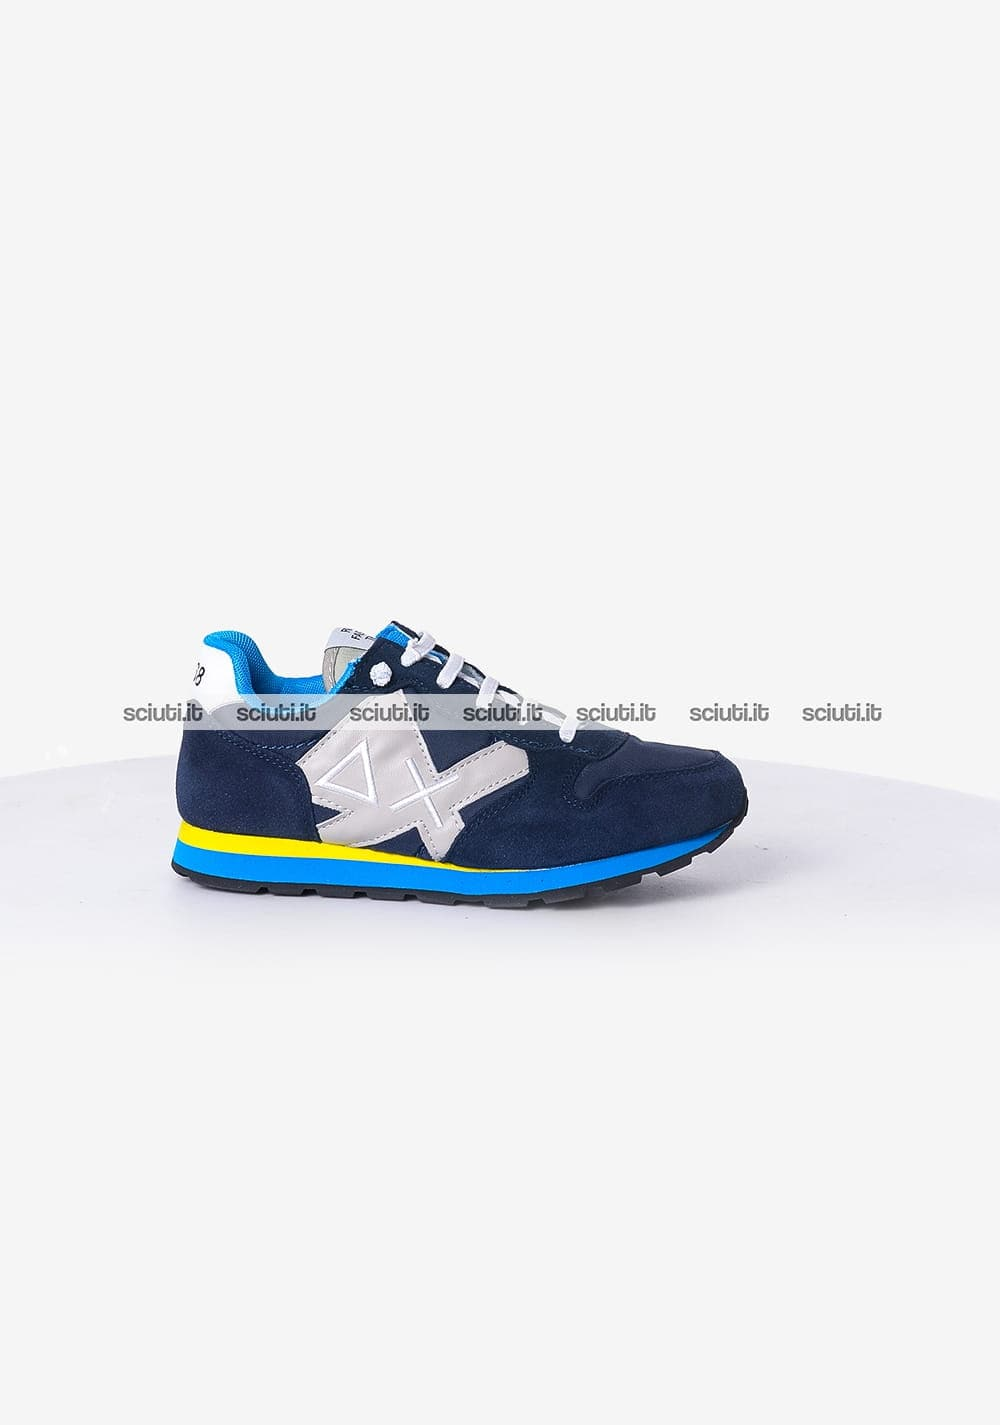 official photos da318 bb510 Scarpe Sun68 bambino Tom multicolor nylon blu turchese